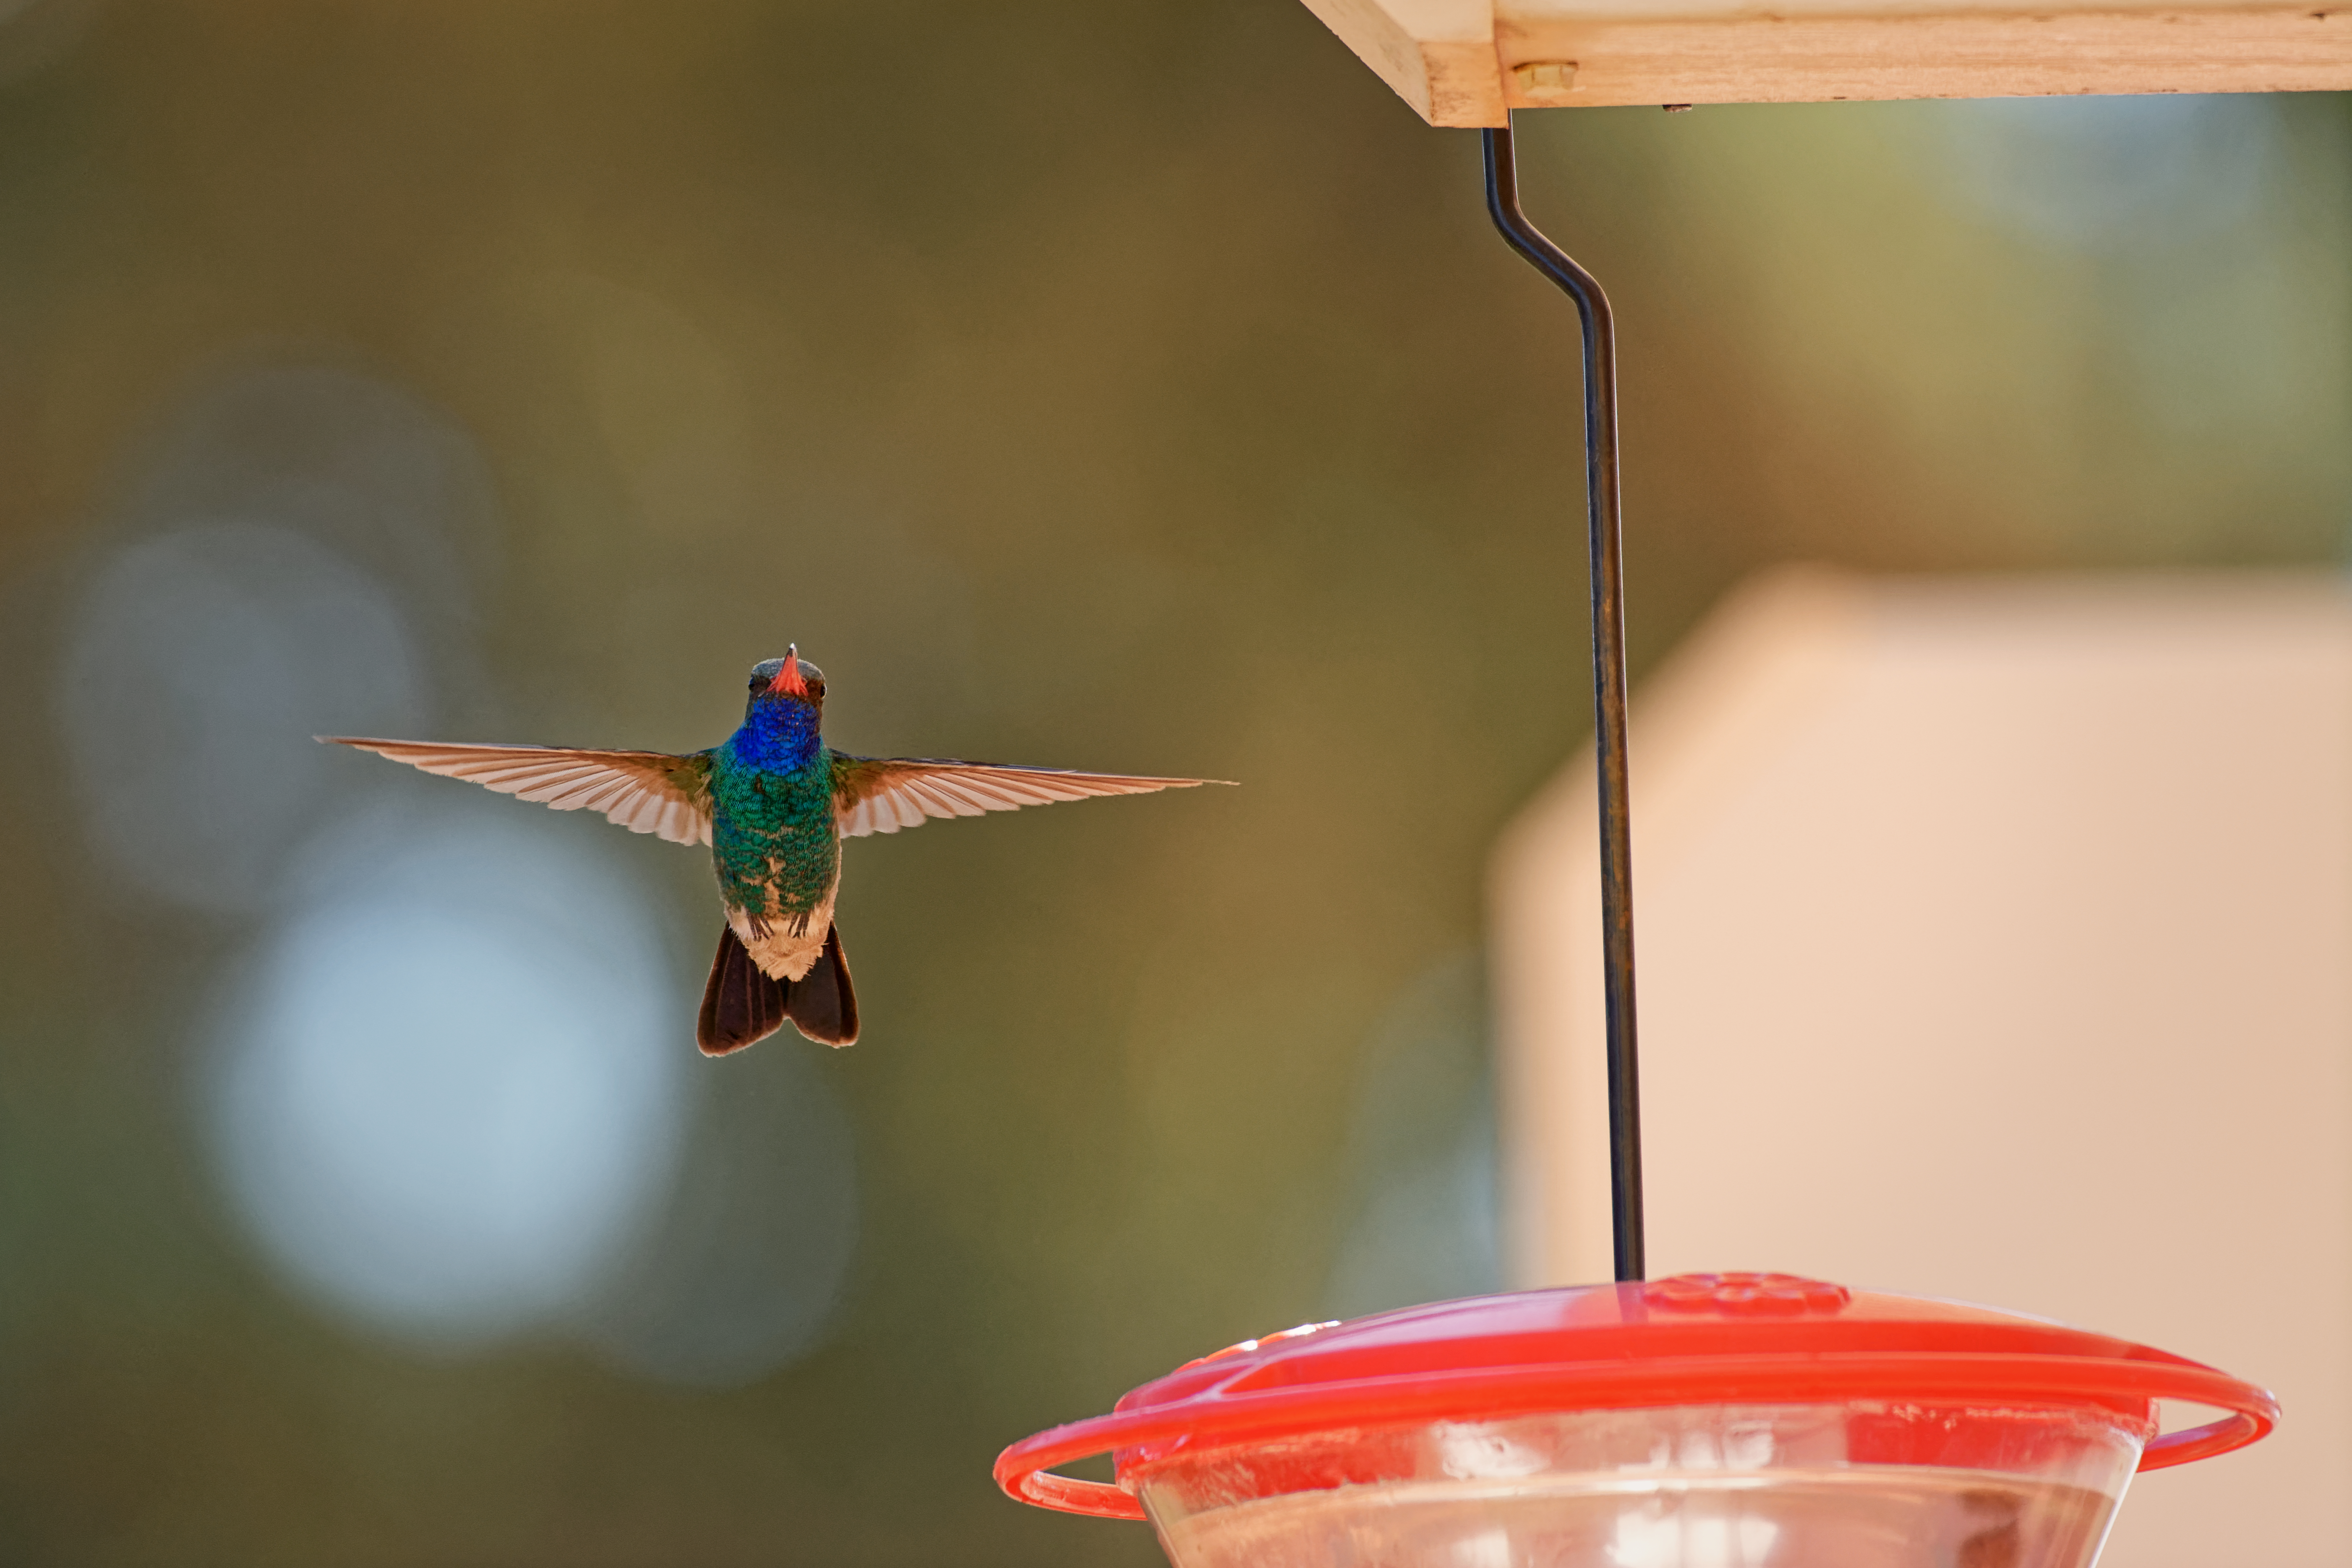 Broad-billed Hummingbird in flight - 8391